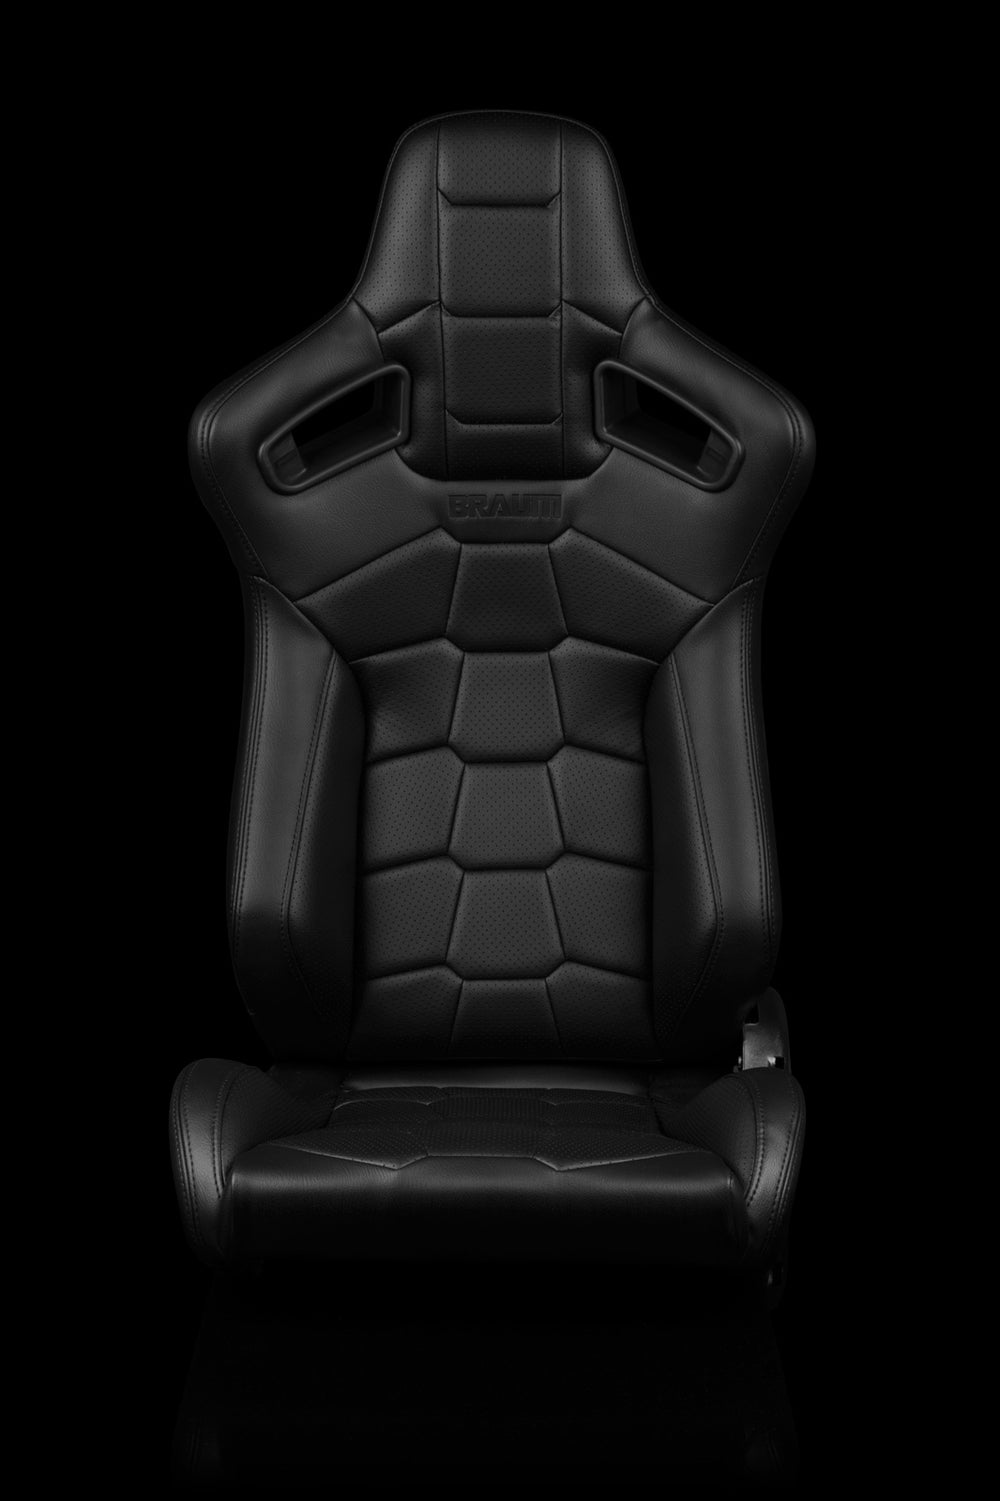 ELITE-X SERIES RACING SEATS (BLACK KOMODO EDITION) – PAIR